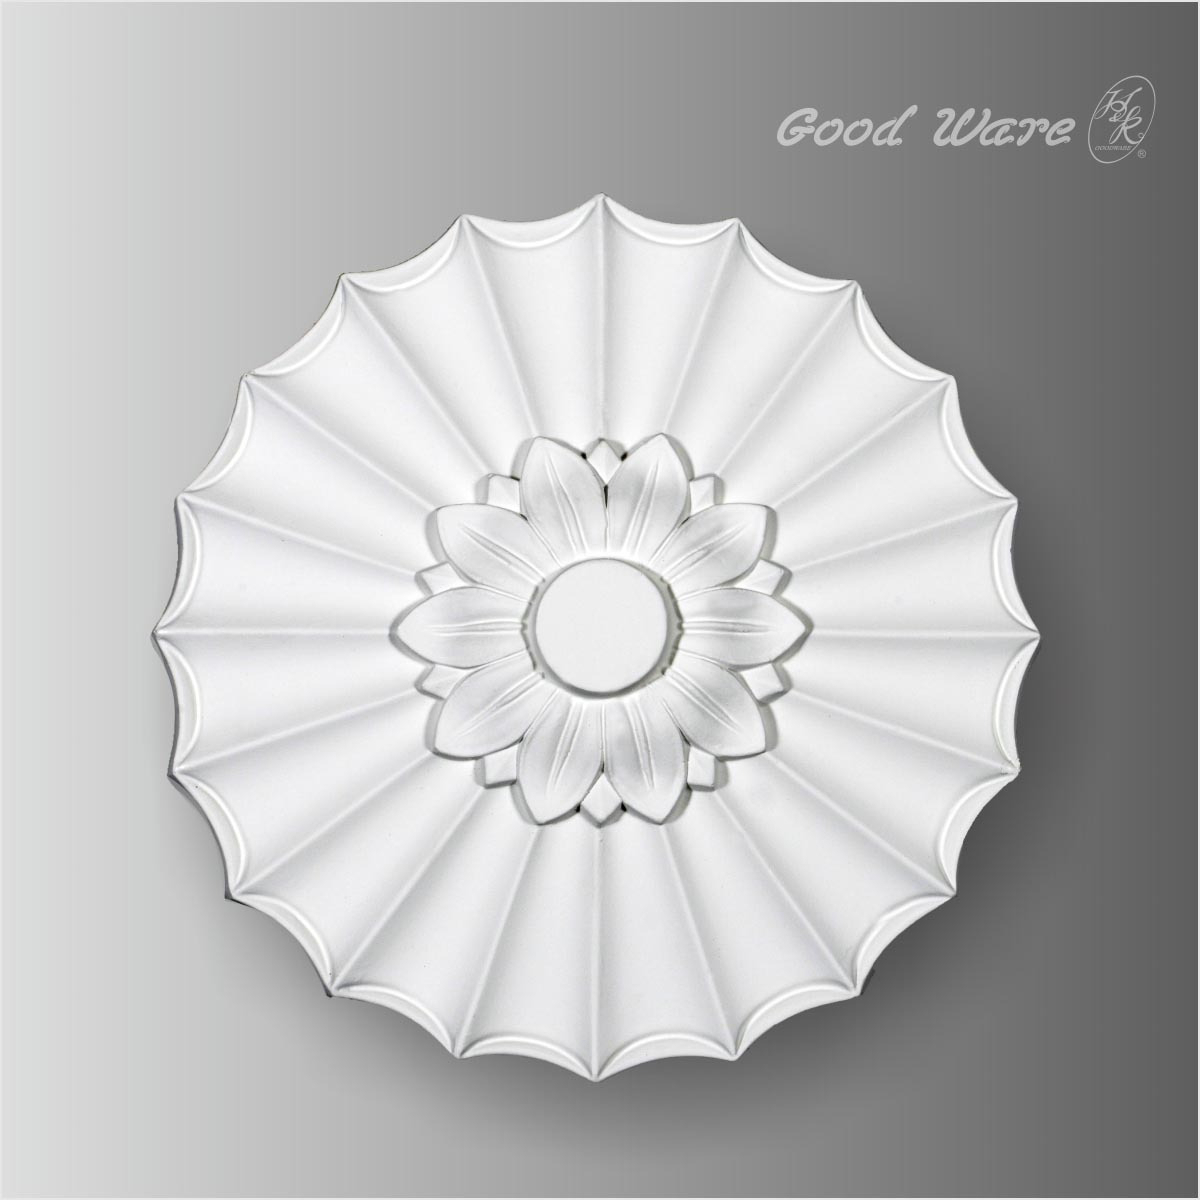 Small Polyurethane Ceiling Medallion Wall Decor European, Ceiling Within Widely Used European Medallion Wall Decor (View 8 of 20)